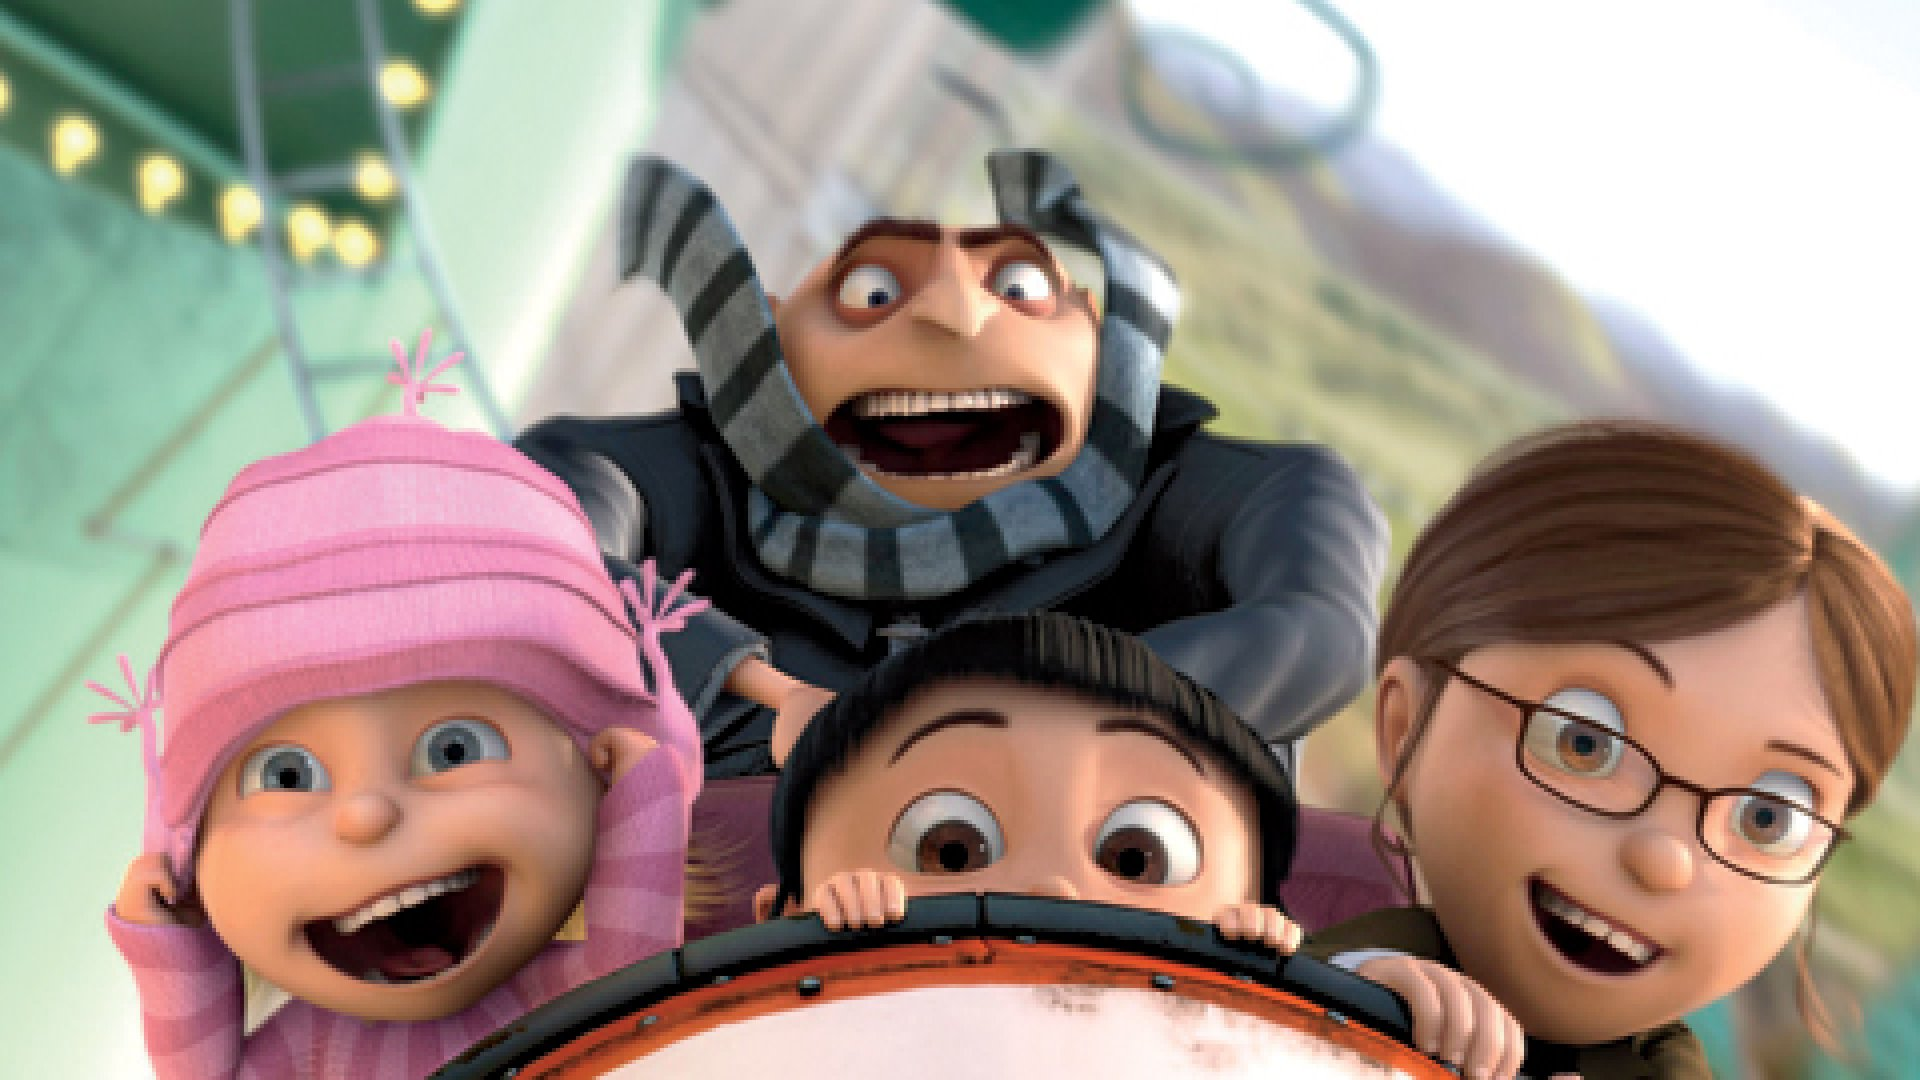 <b>Hold On Tight</b> RealD gives movies like <em>Despicable Me</em> that 3-D look. RealD is up for a $200 million IPO.